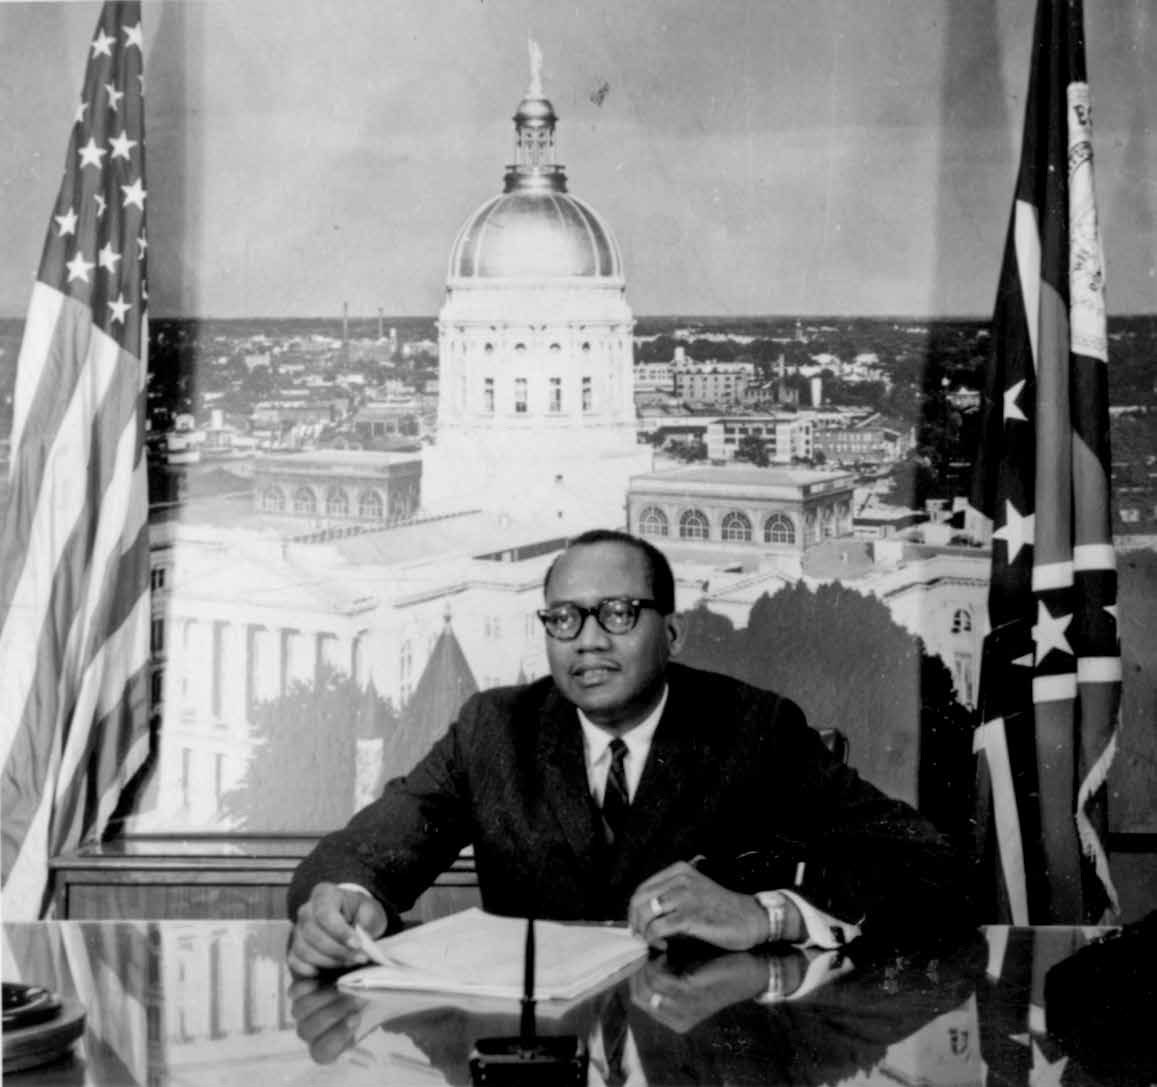 Leroy Johnson on running for mayor of Atlanta, Leroy Johnson, 1928- 1969 August 27 James P. Brawley Collection